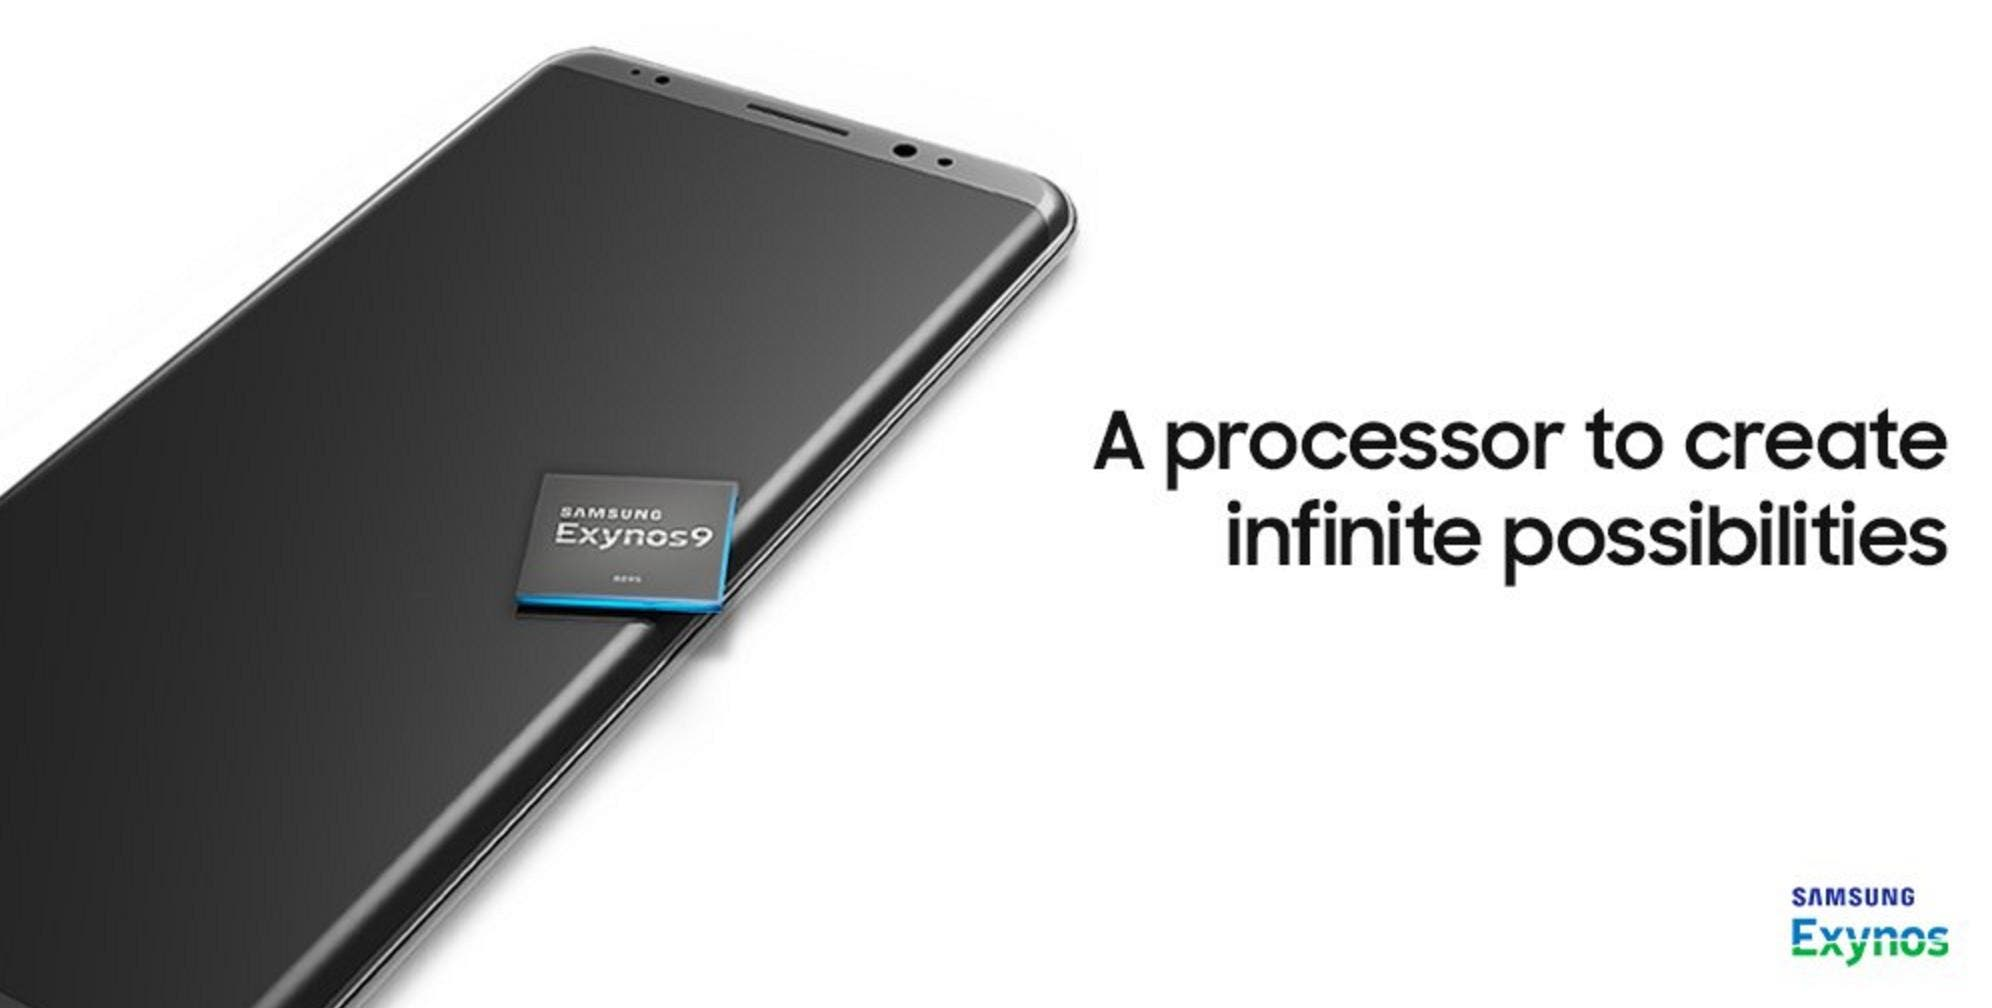 Galaxy-note-8-exynos